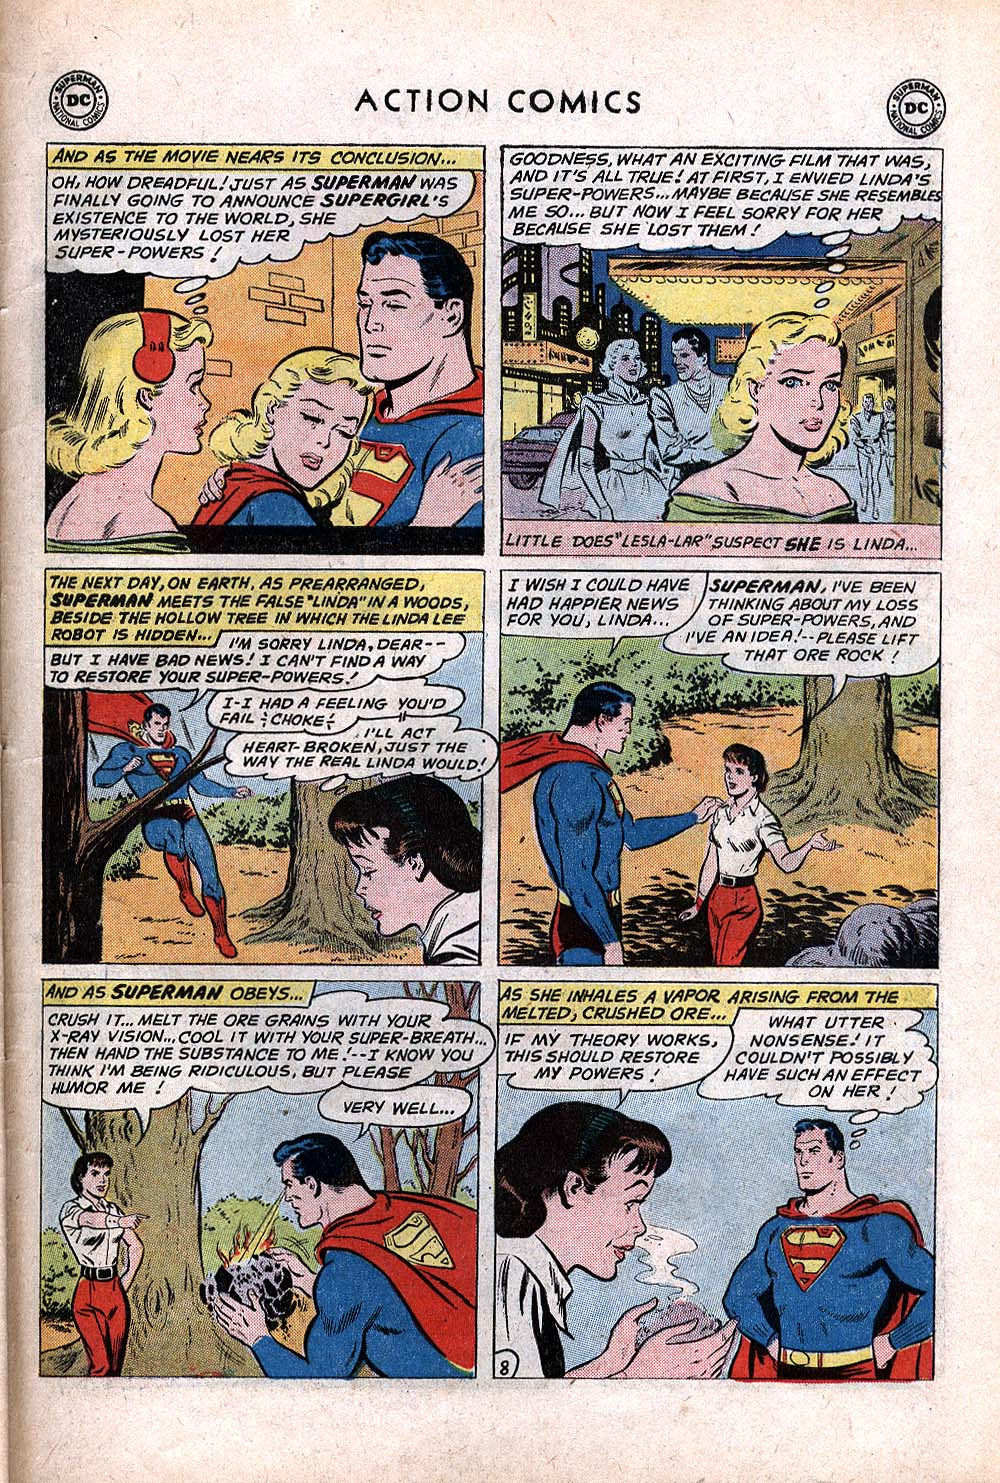 Action Comics (1938) 280 Page 26